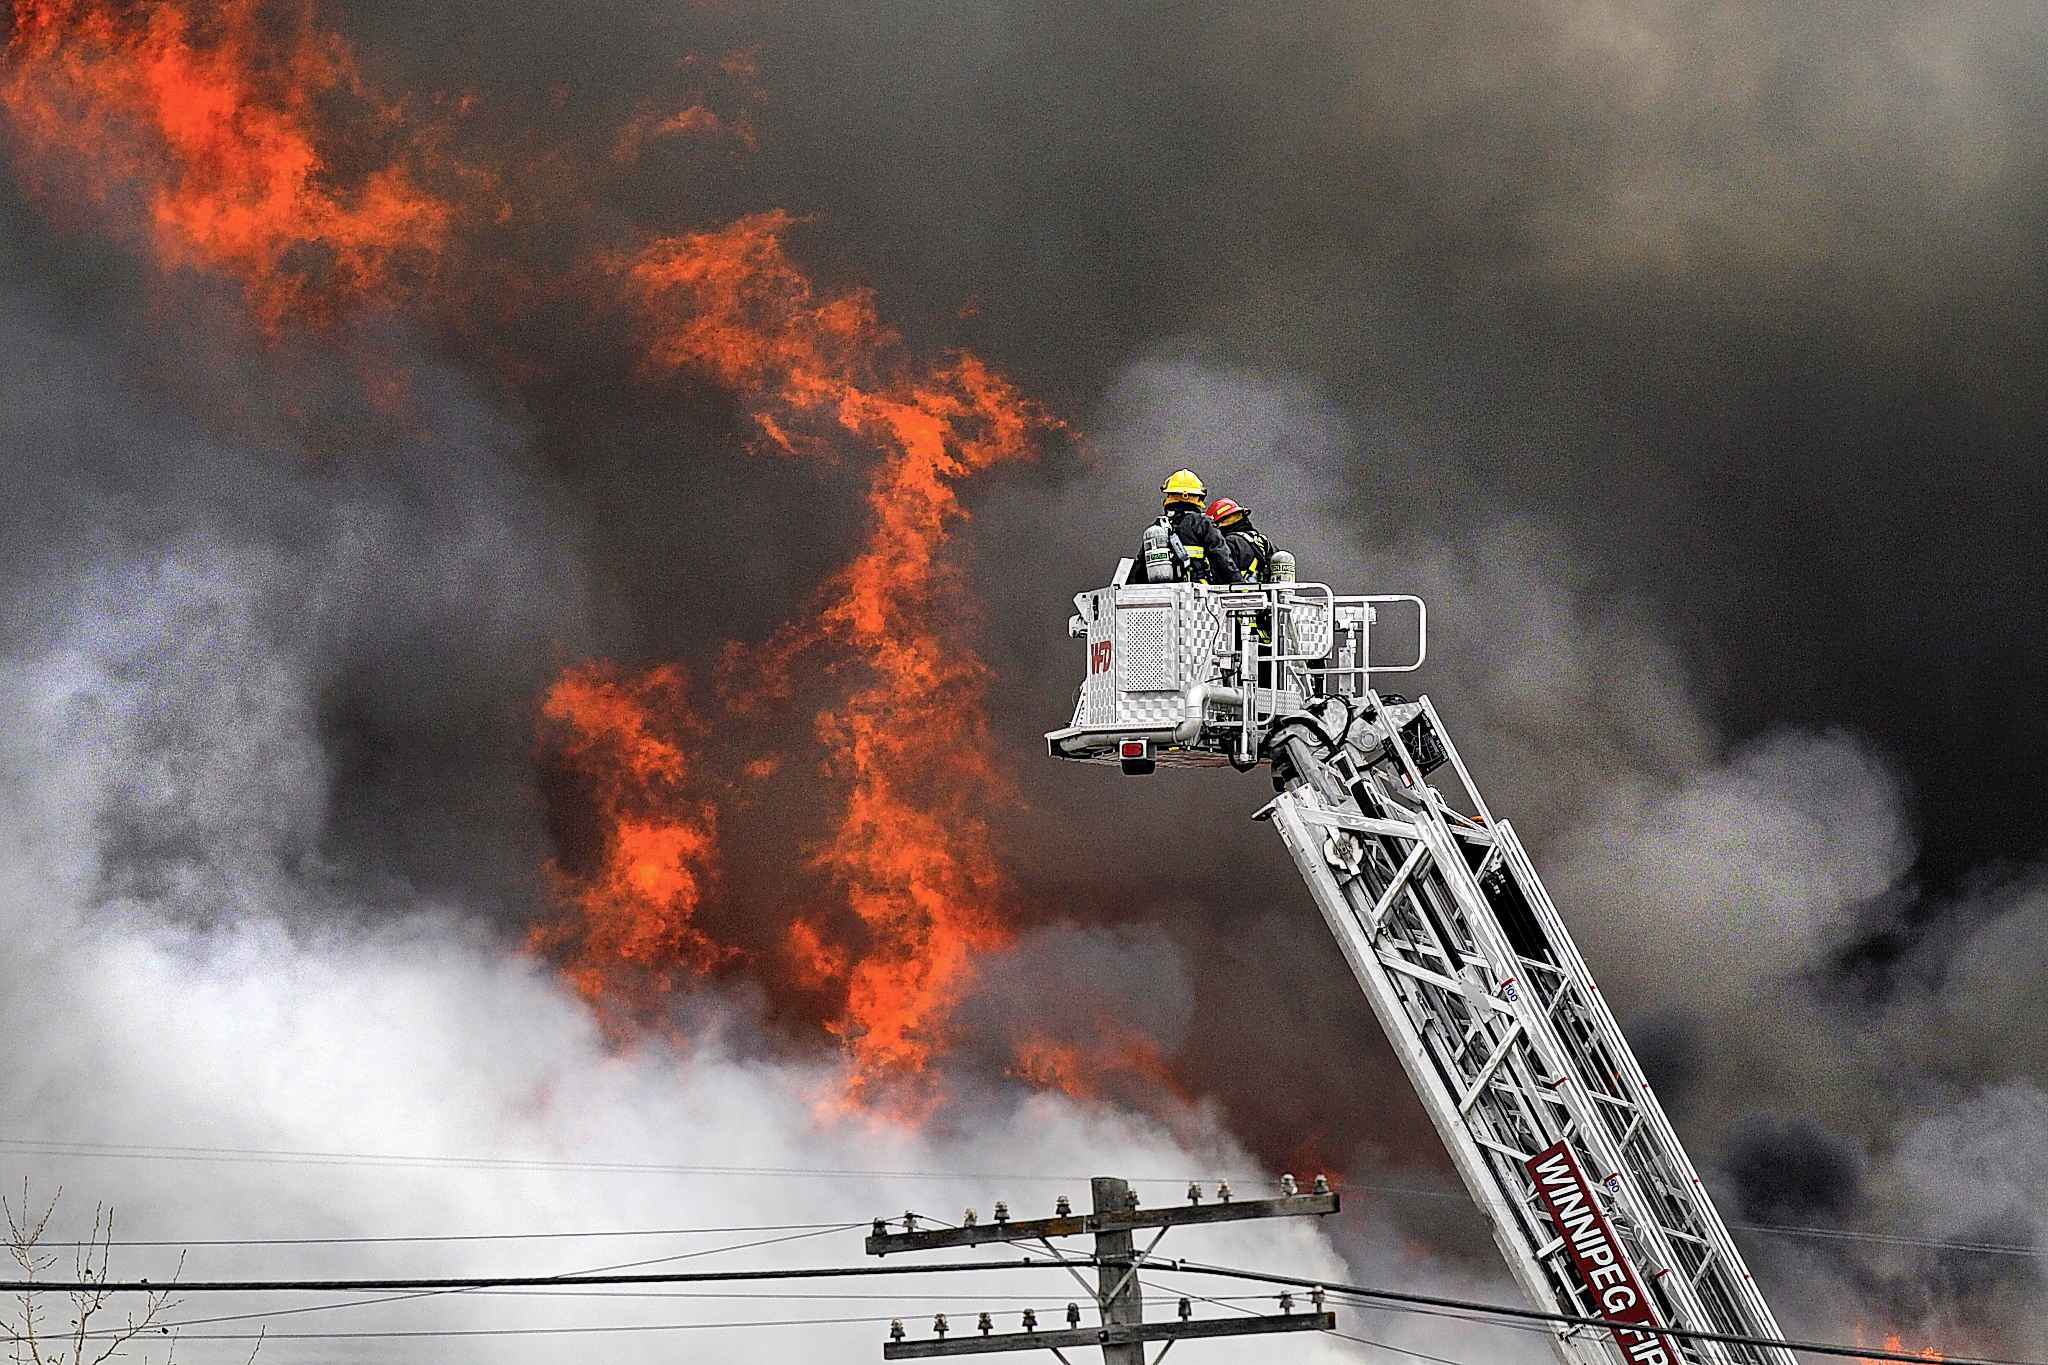 Firefighters position an aerial ladder truck while fighting a fire at an oilseed plant in St. Boniface.